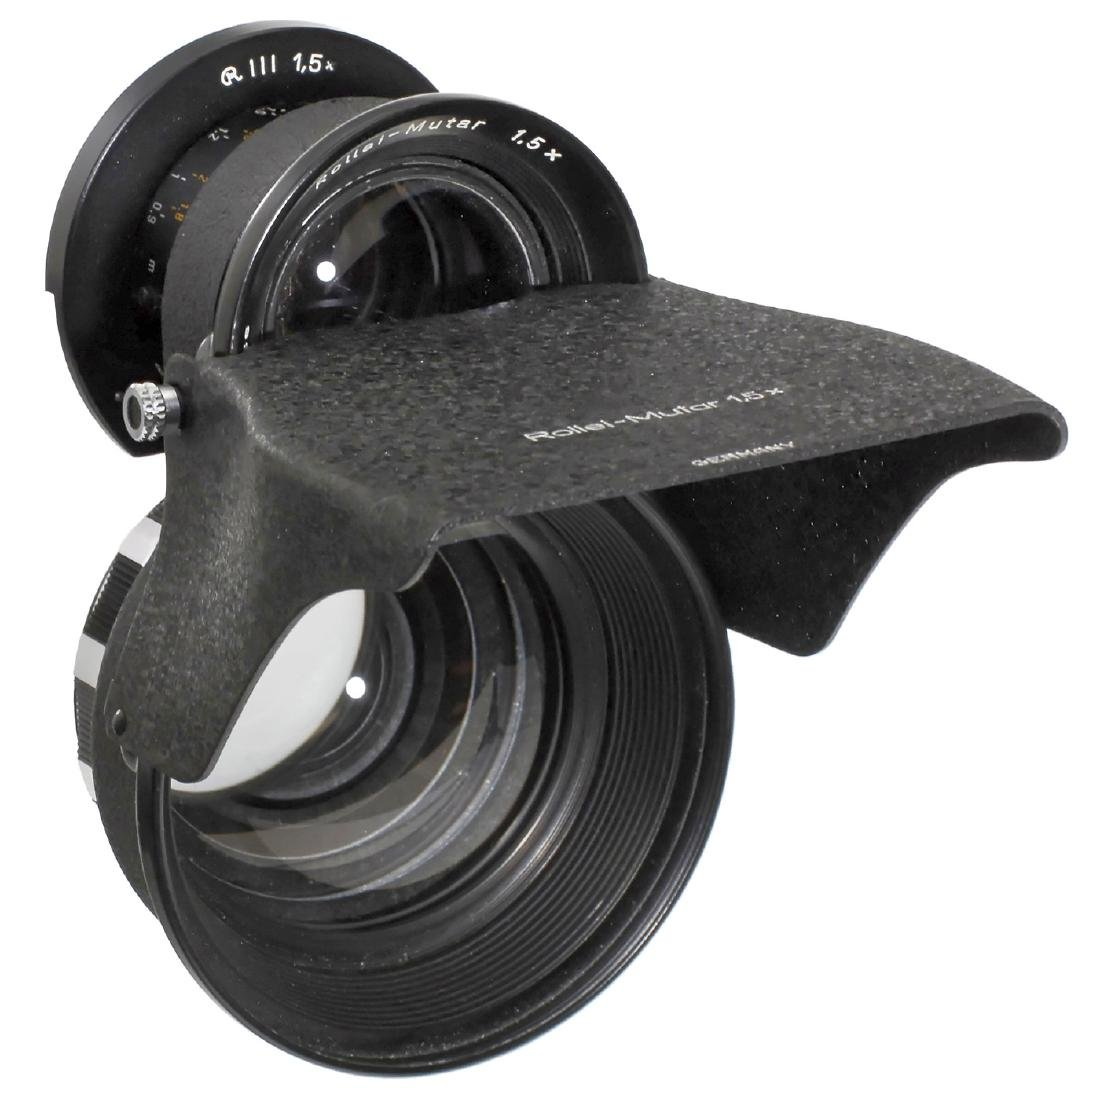 Tele and Wide-Angle Mutar for Rolleiflex TLR - 2